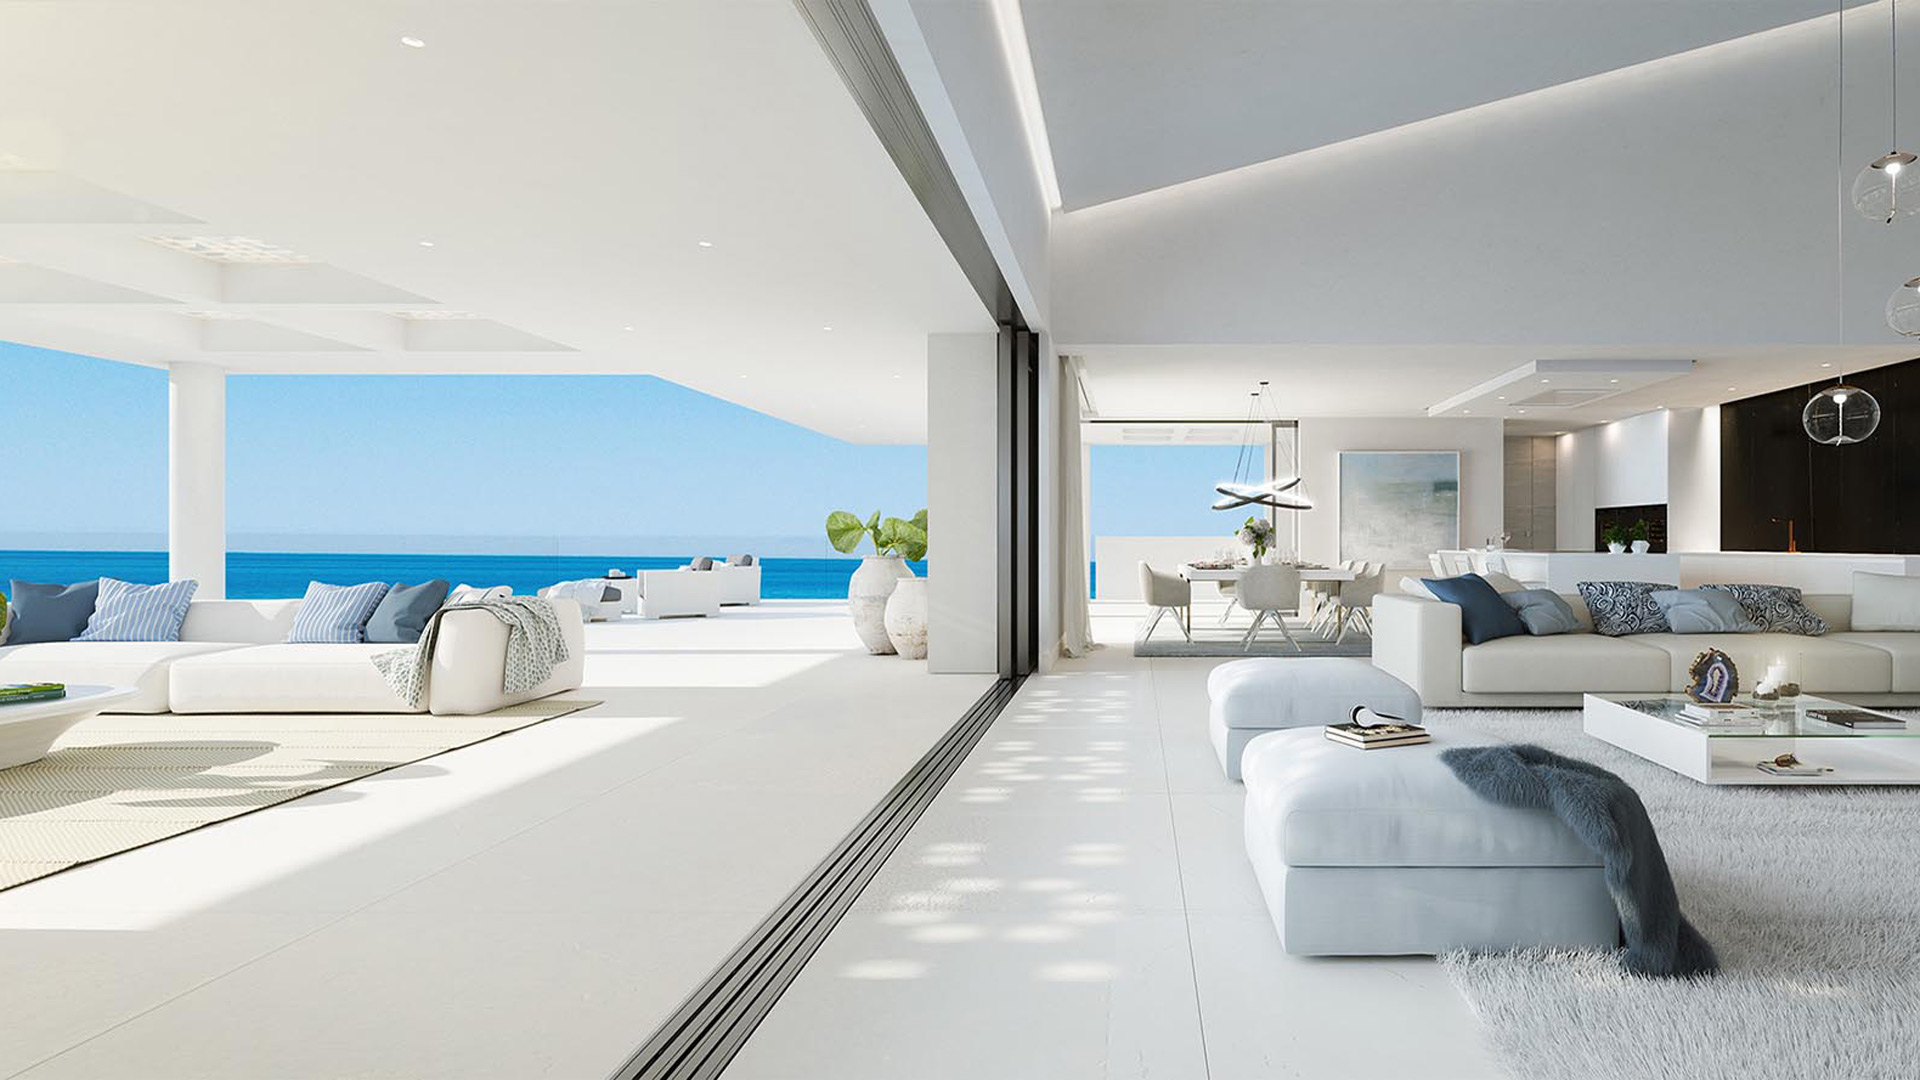 Jardinana - Modern Apartments in La Cala de Mijas